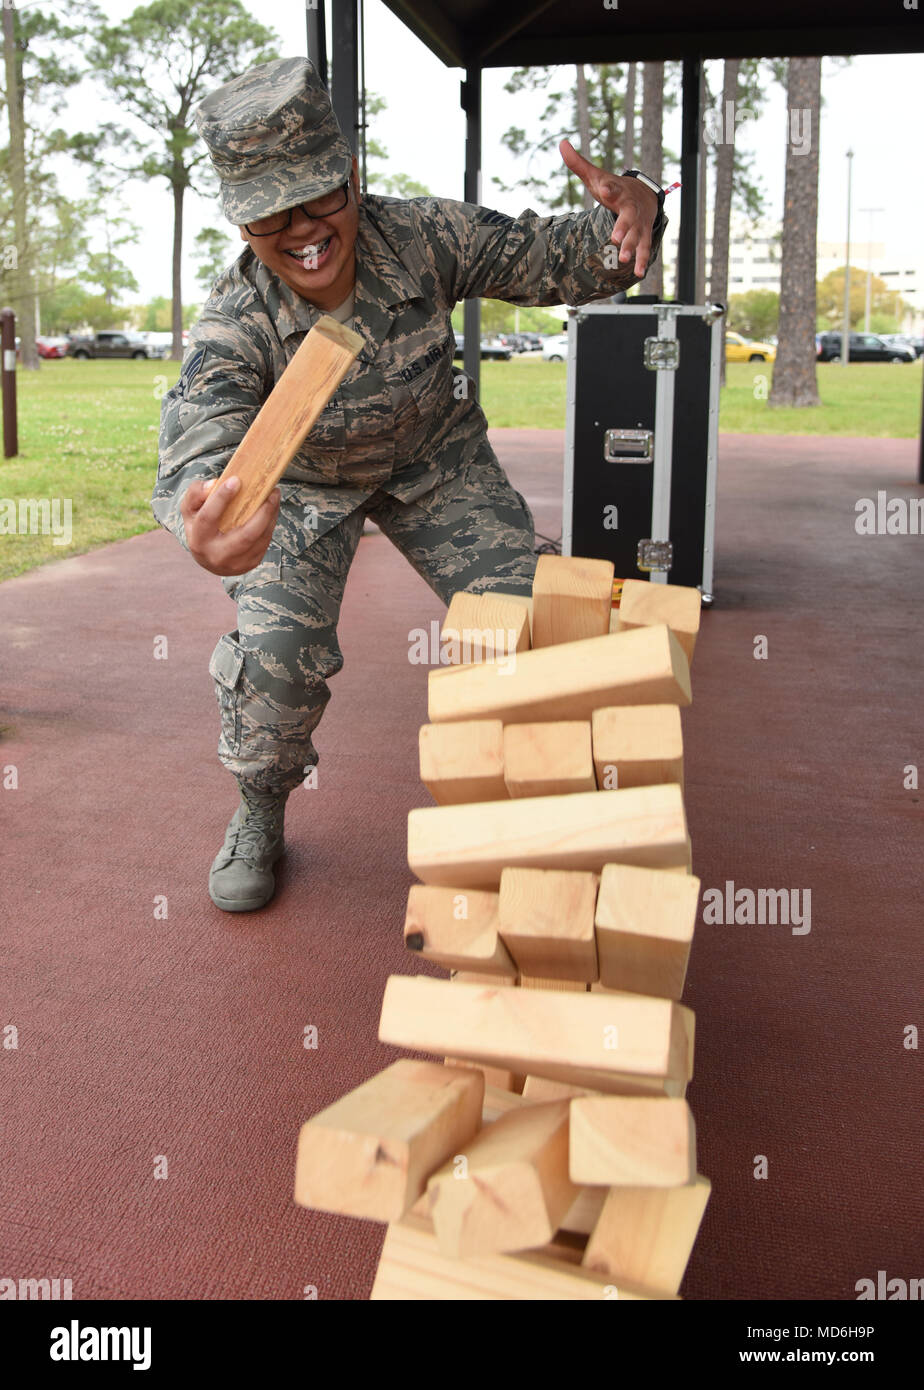 U.S. Air Force Senior Airman Lucerno Salazar-Escamilla, 81st Surgical Operations Squadron physical medicine administration, participates in a game of Jenga during the Air Force Assistance Fund burger burn at the Crotwell Track March 26, 2018, on Keesler Air Force Base, Mississippi. The AFAF is an annual effort to raise funds for charitable affiliates that provide support to our Air Force family in need. (U.S. Air Force photo by Kemberly Groue) - Stock Image